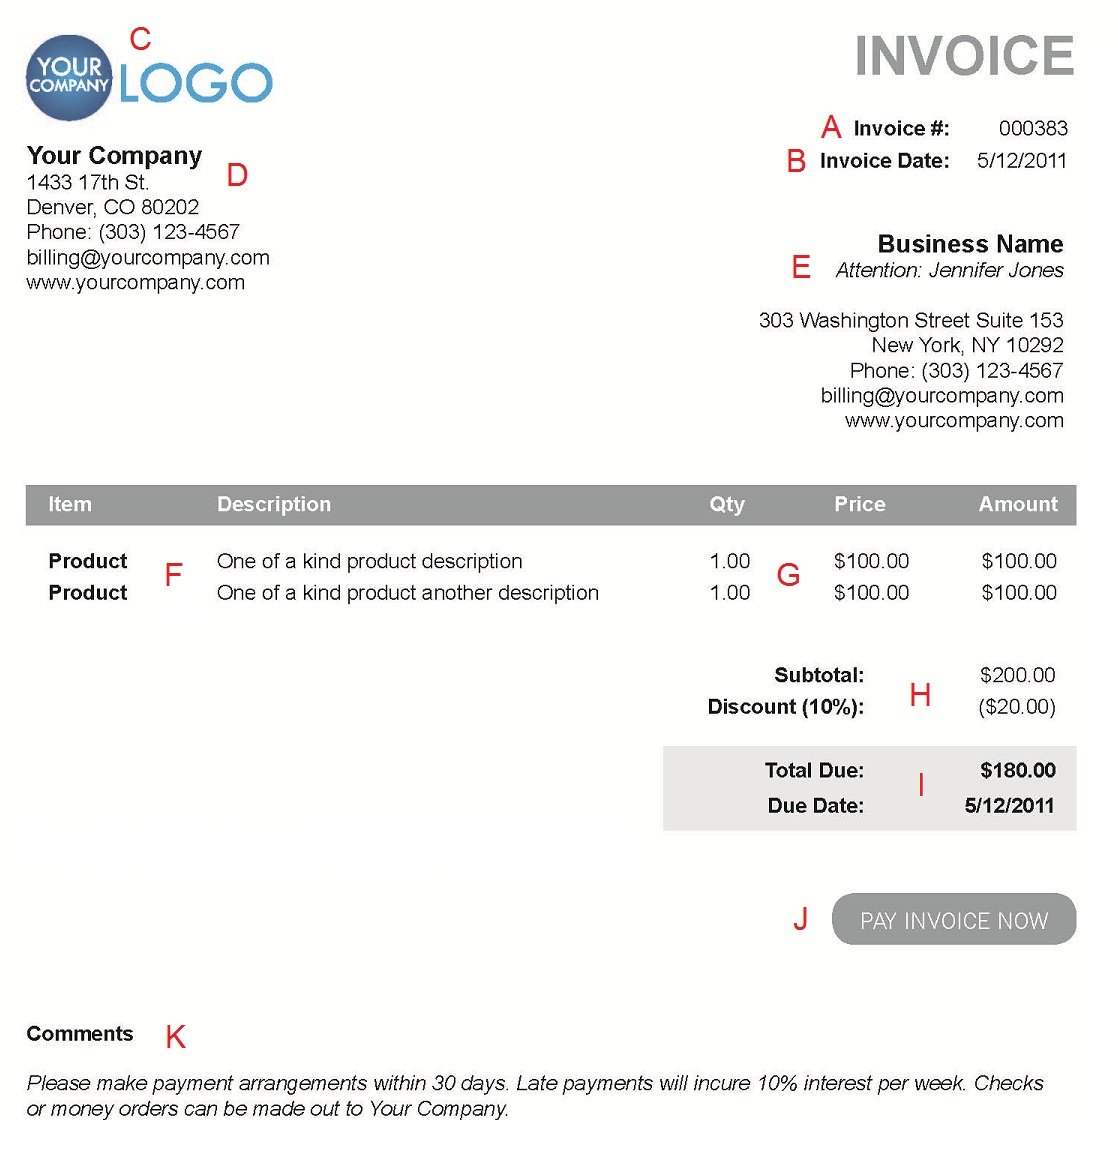 Centralasianshepherdus  Pretty The  Different Sections Of An Electronic Payment Invoice With Outstanding A  With Charming Customer Invoice Template Excel Also Free Invoice Software For Small Business Download In Addition Open Invoicing And Dictionary Invoice As Well As Standard Invoice Terms And Conditions Additionally Pro Forma Invoices And Vat From Paysimplecom With Centralasianshepherdus  Outstanding The  Different Sections Of An Electronic Payment Invoice With Charming A  And Pretty Customer Invoice Template Excel Also Free Invoice Software For Small Business Download In Addition Open Invoicing From Paysimplecom